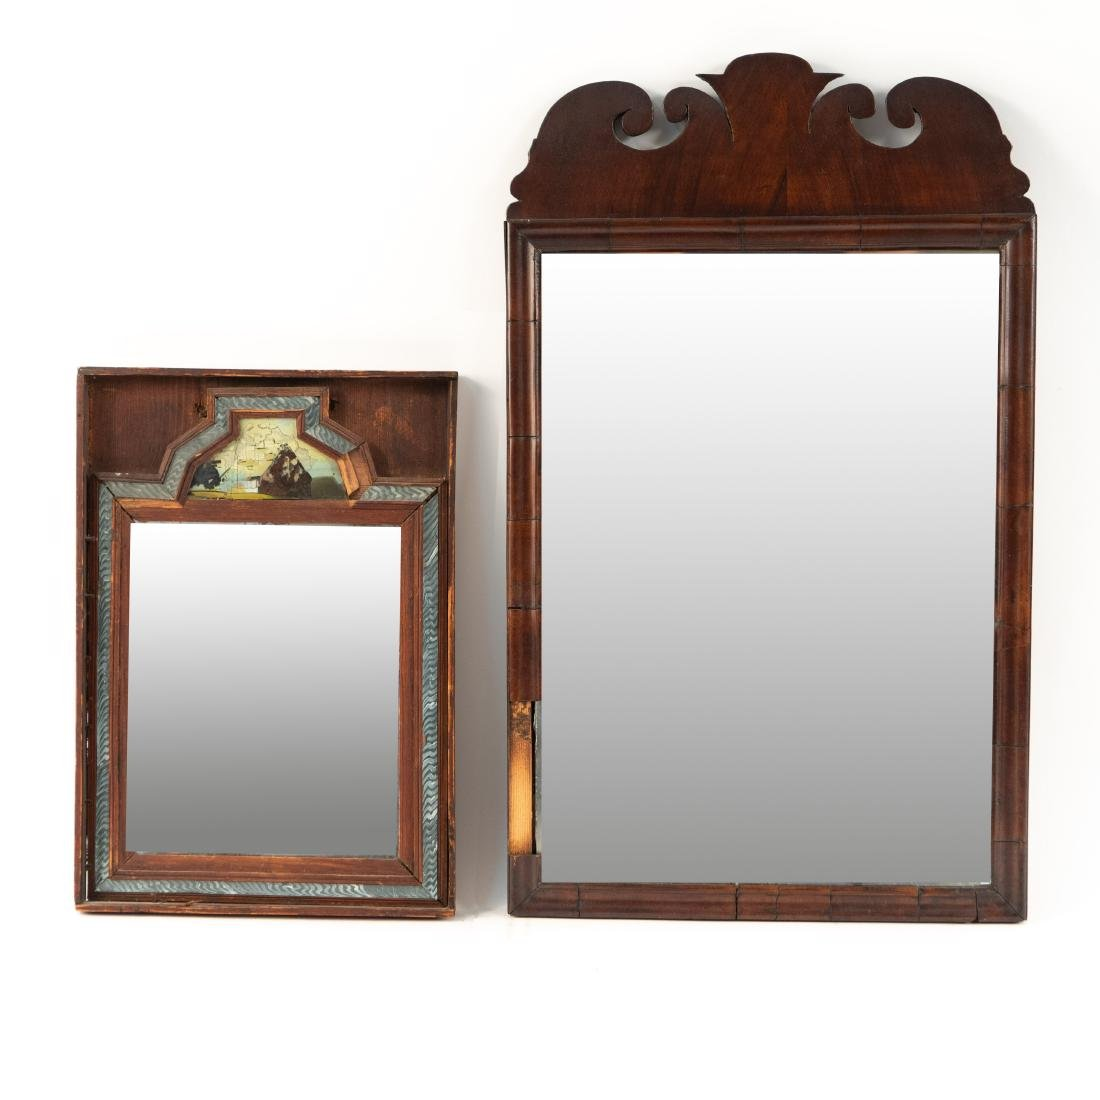 (2) 19TH C. ANTIQUE MIRRORS